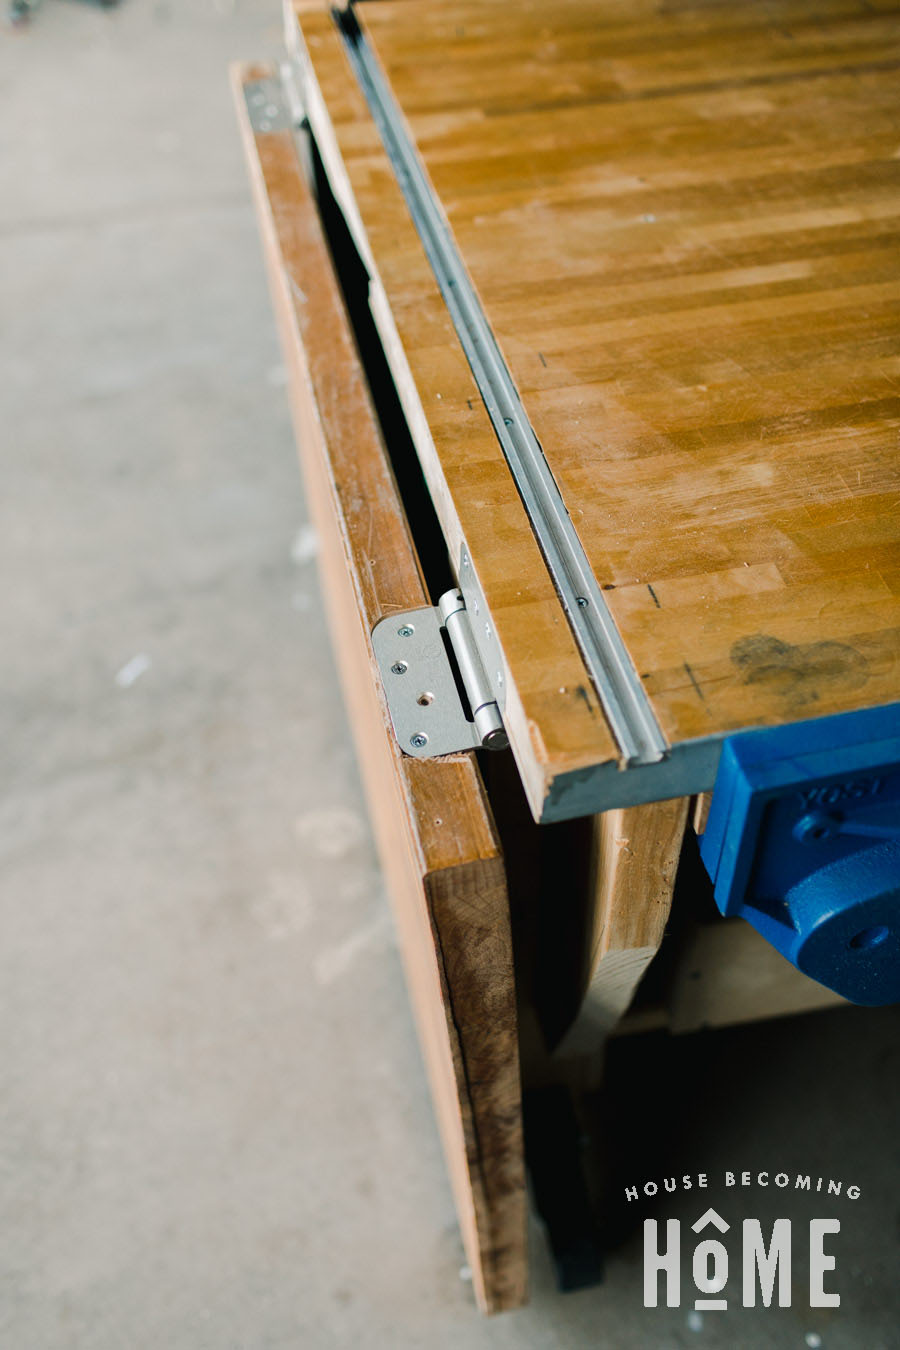 Hinged Side for Assembly Table